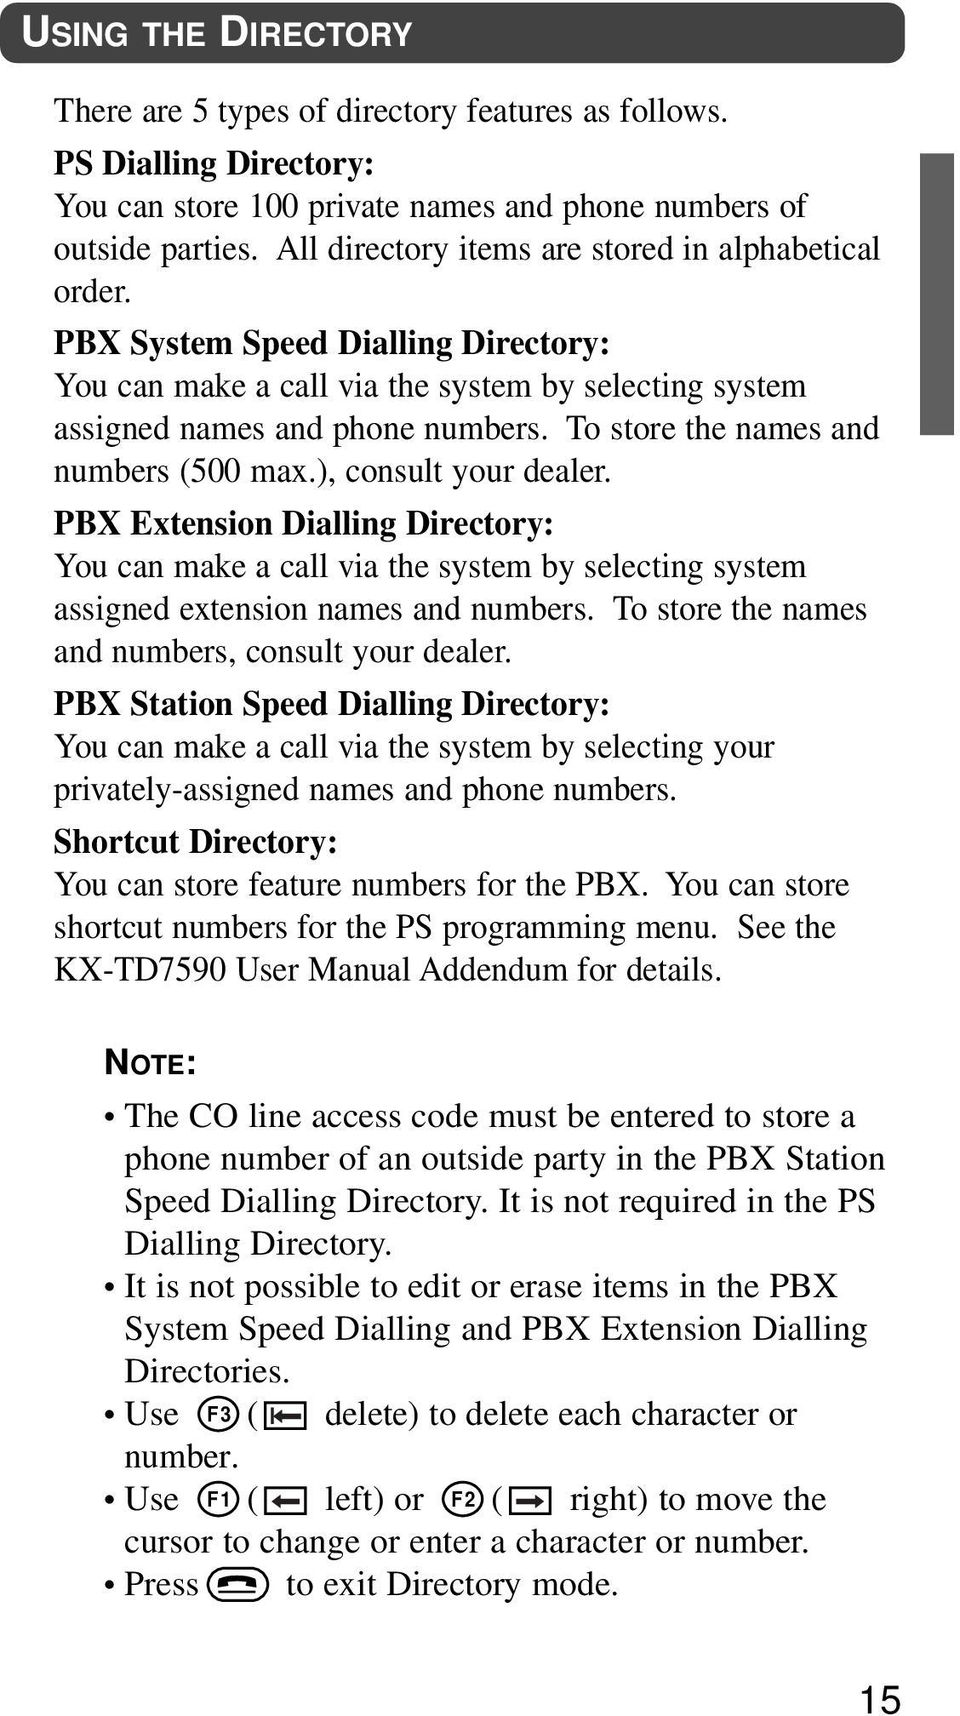 To store the names and numbers (500 max.), consult your dealer. PBX Extension Dialling Directory: You can make a call via the system by selecting system assigned extension names and numbers.